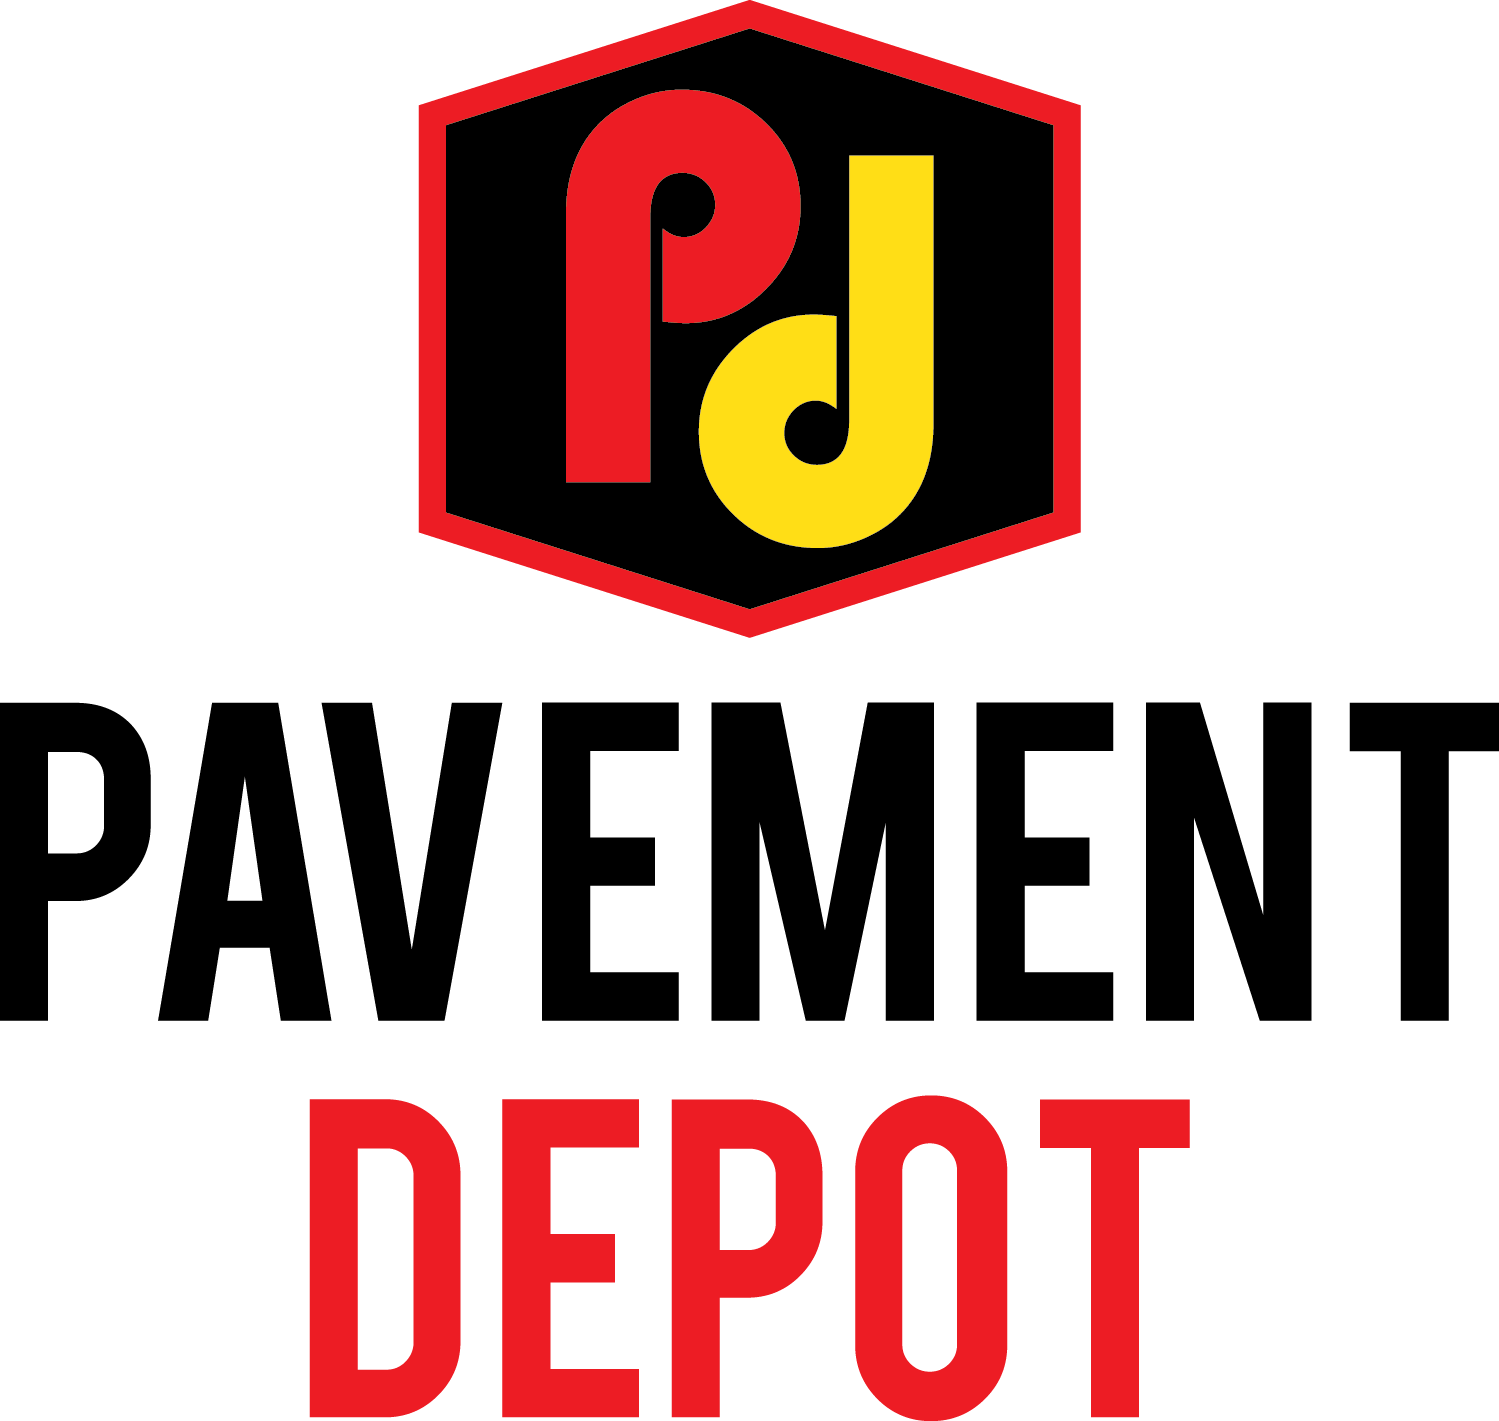 Pavement Depot Inc.